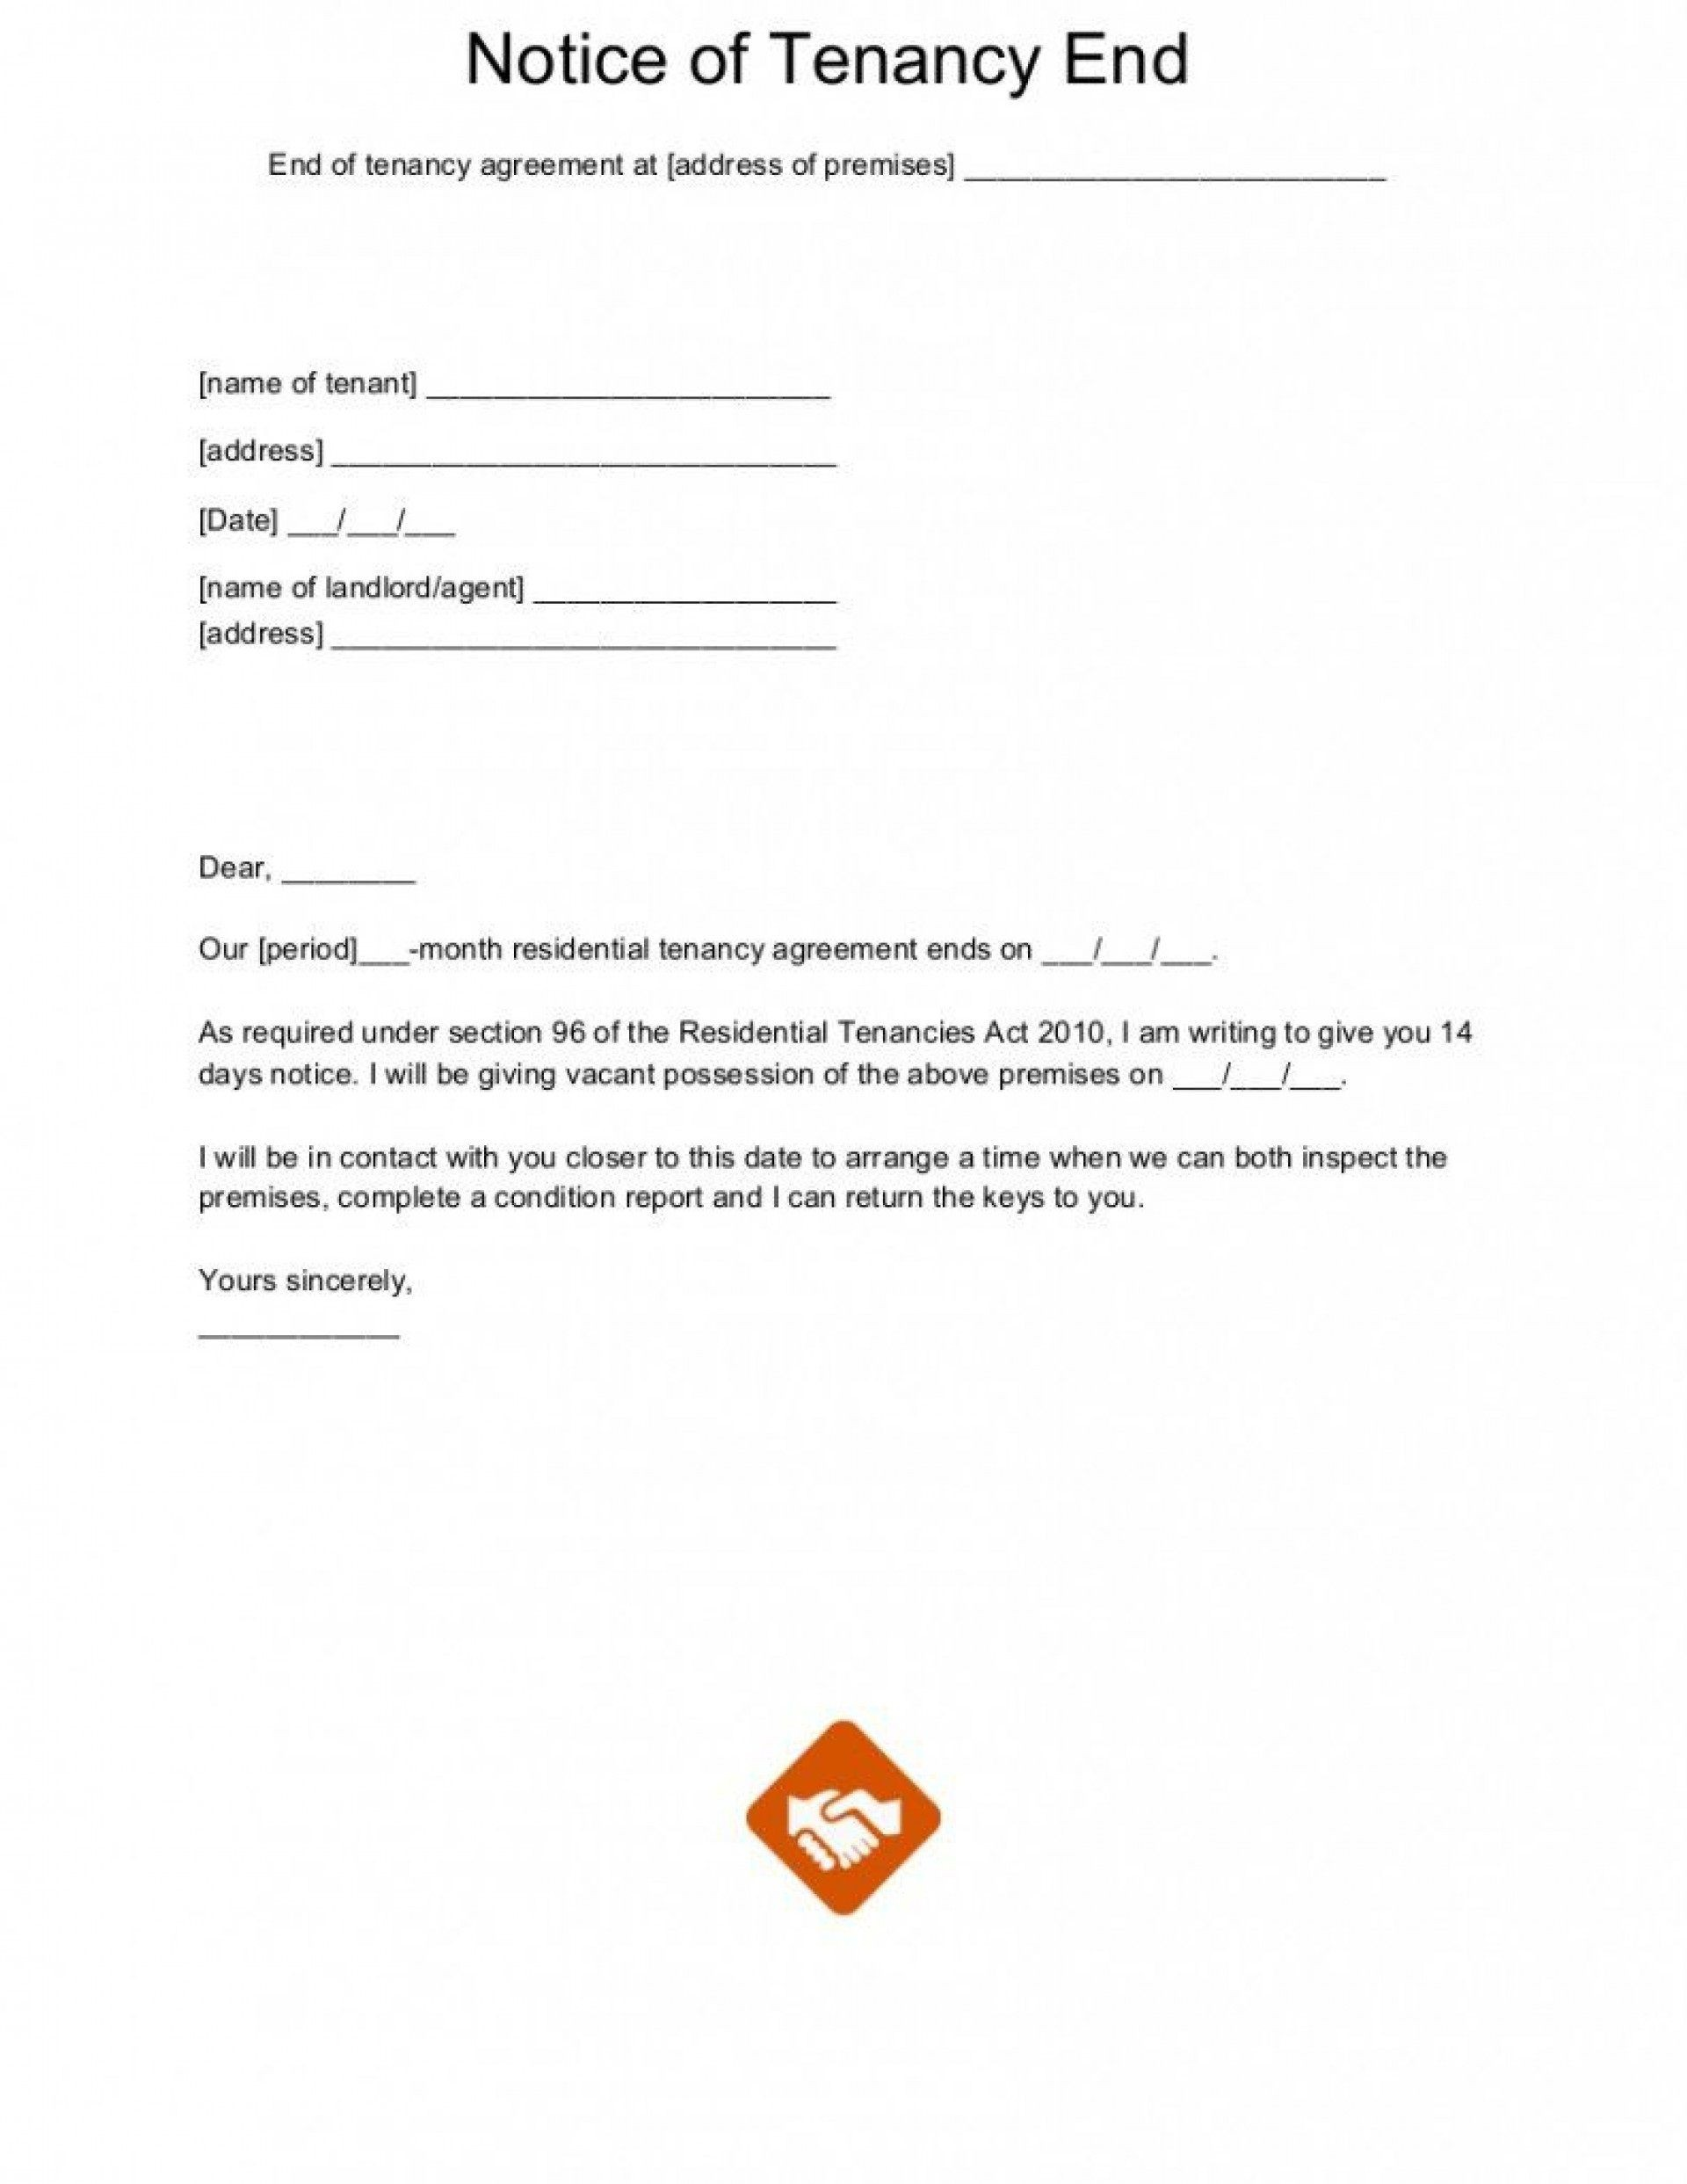 005 Formidable Template Letter To Terminate Rental Agreement Image  End Tenancy For Landlord Ending1920